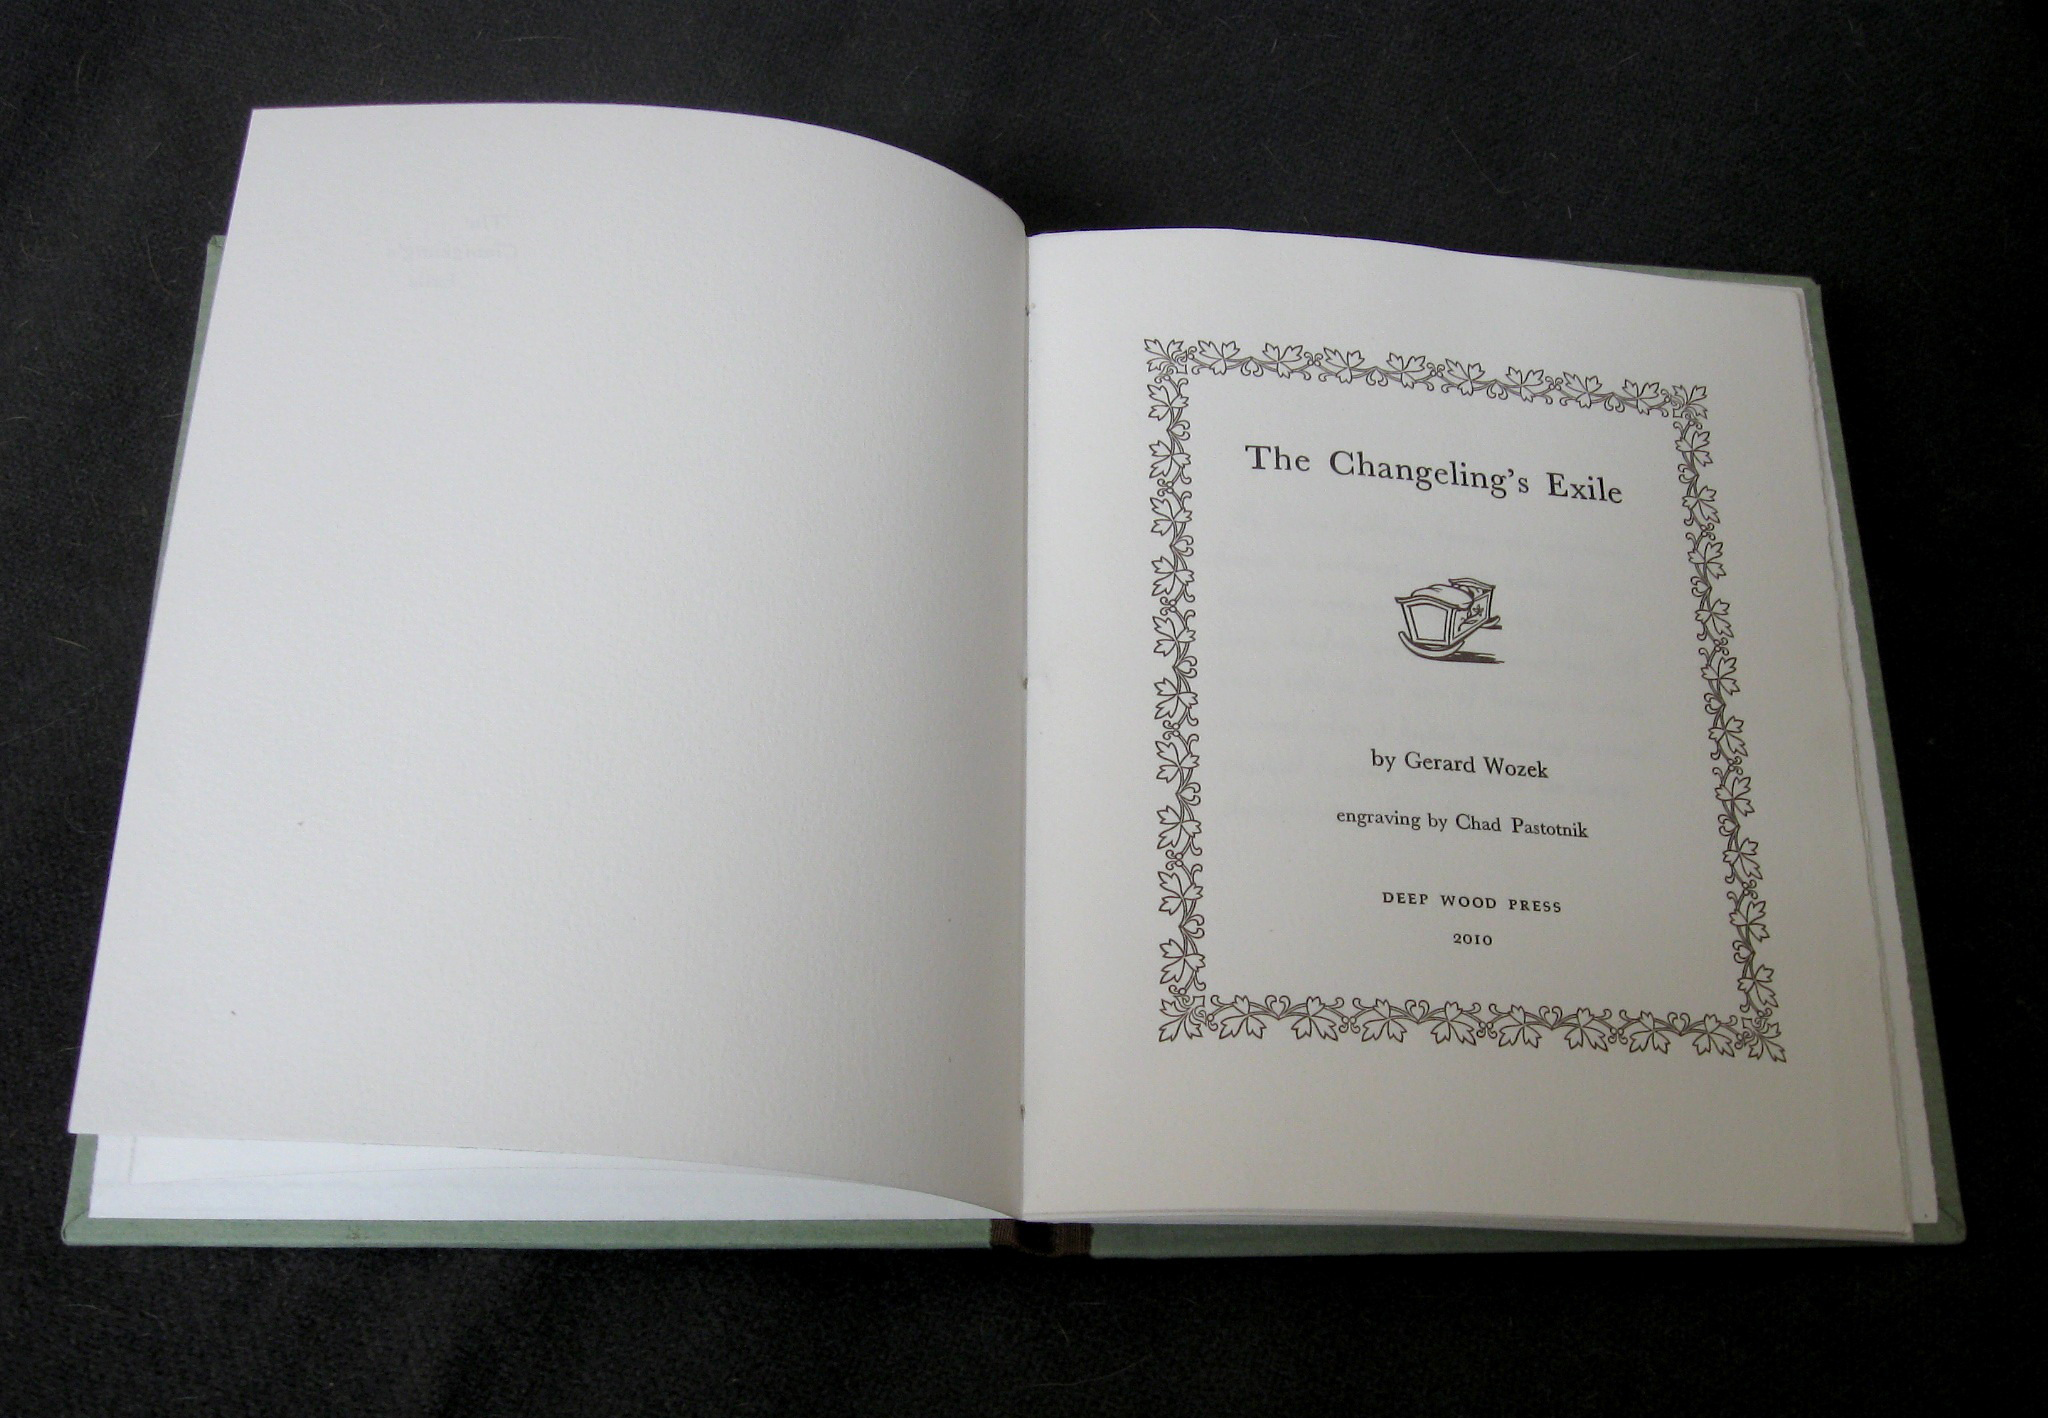 Changeling's Exile title page